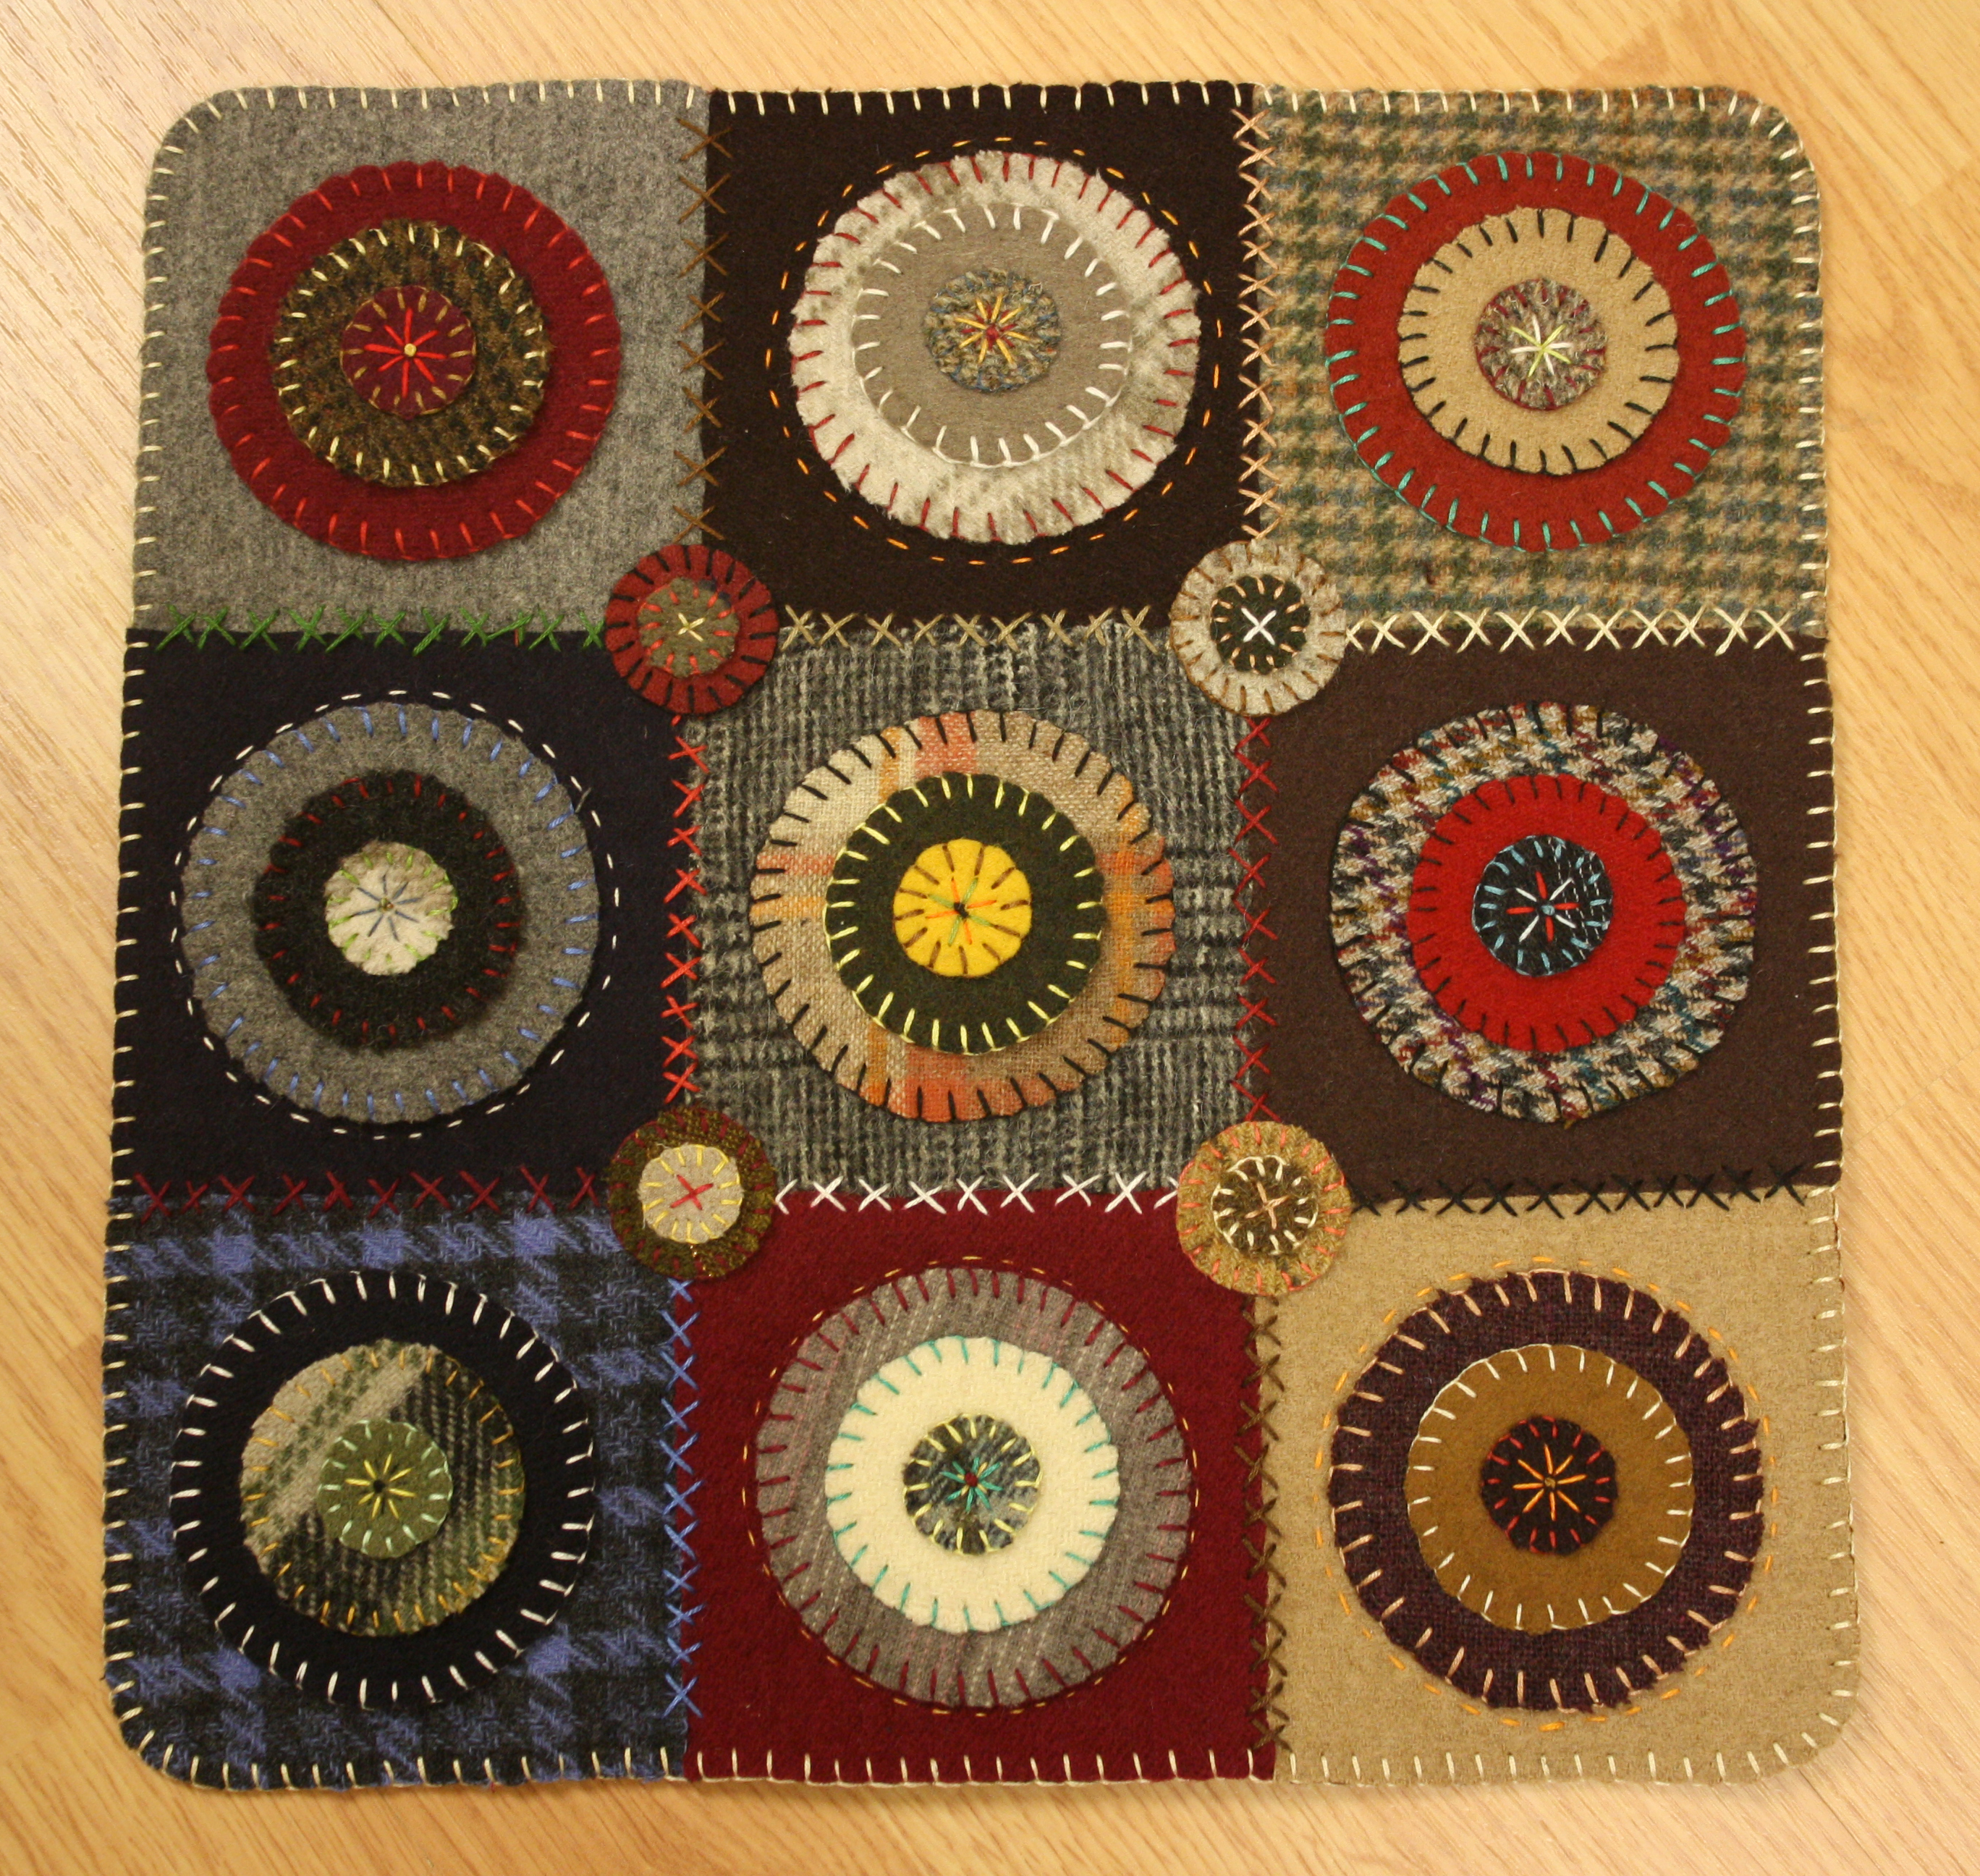 Wool Penny Rug Ashton Publications